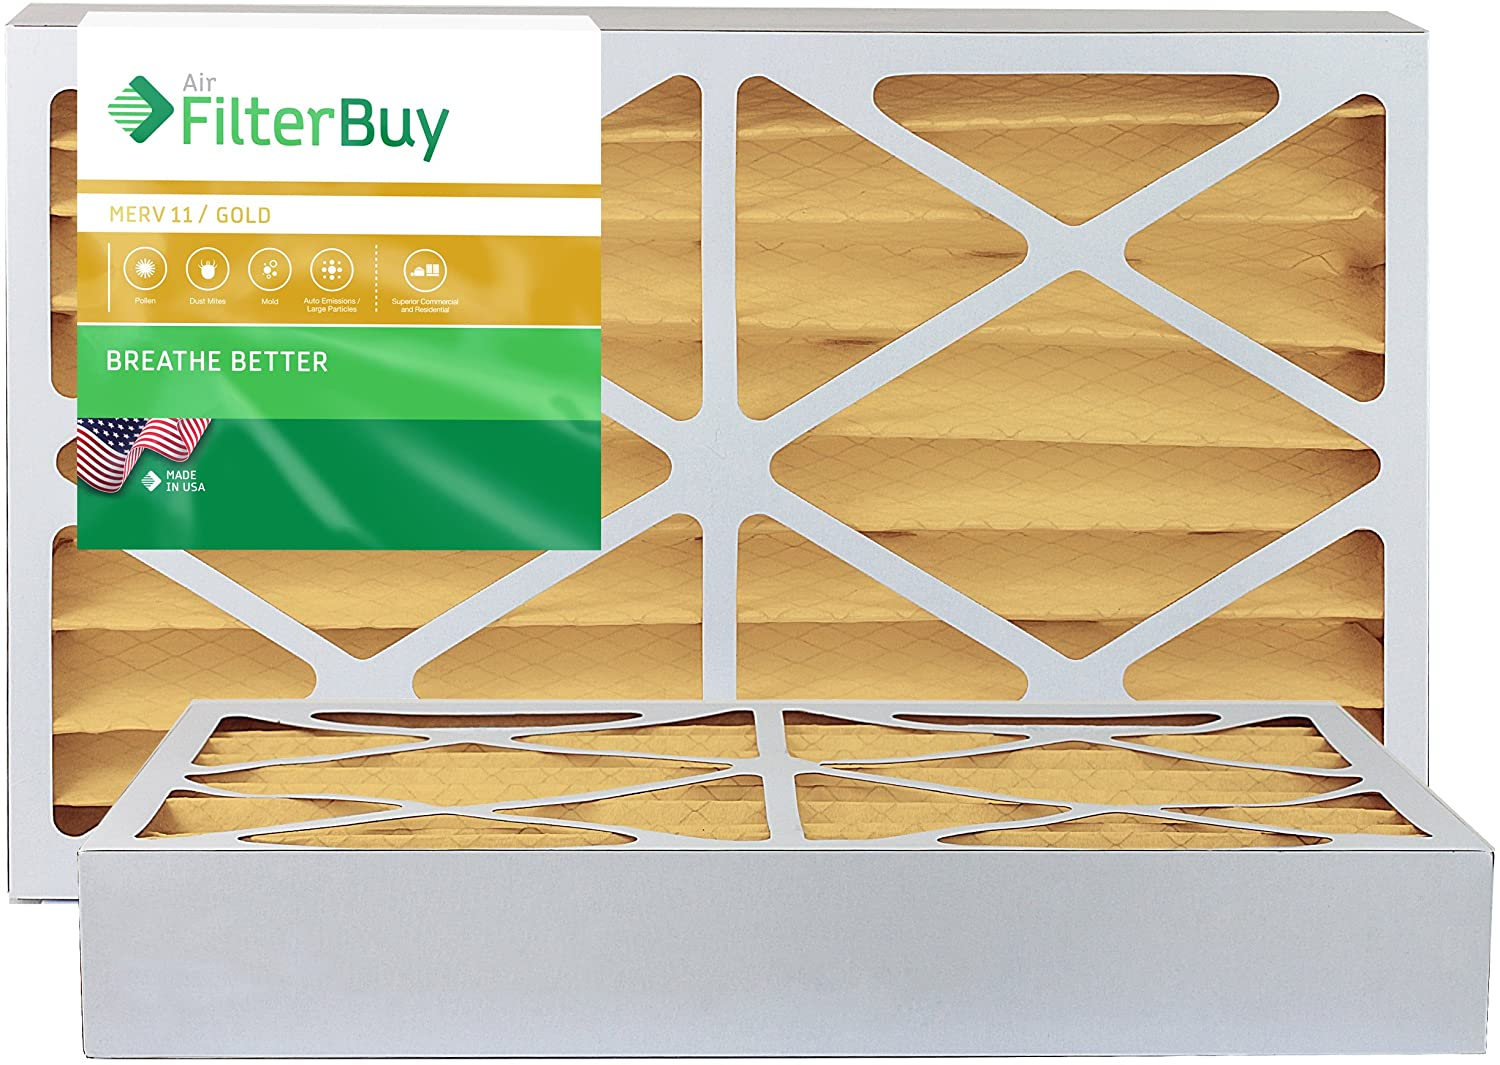 FilterBuy 18x20x4 MERV 11 Pleated AC Furnace Air Filter, (Pack of 2 Filters), 18x20x4 – Gold